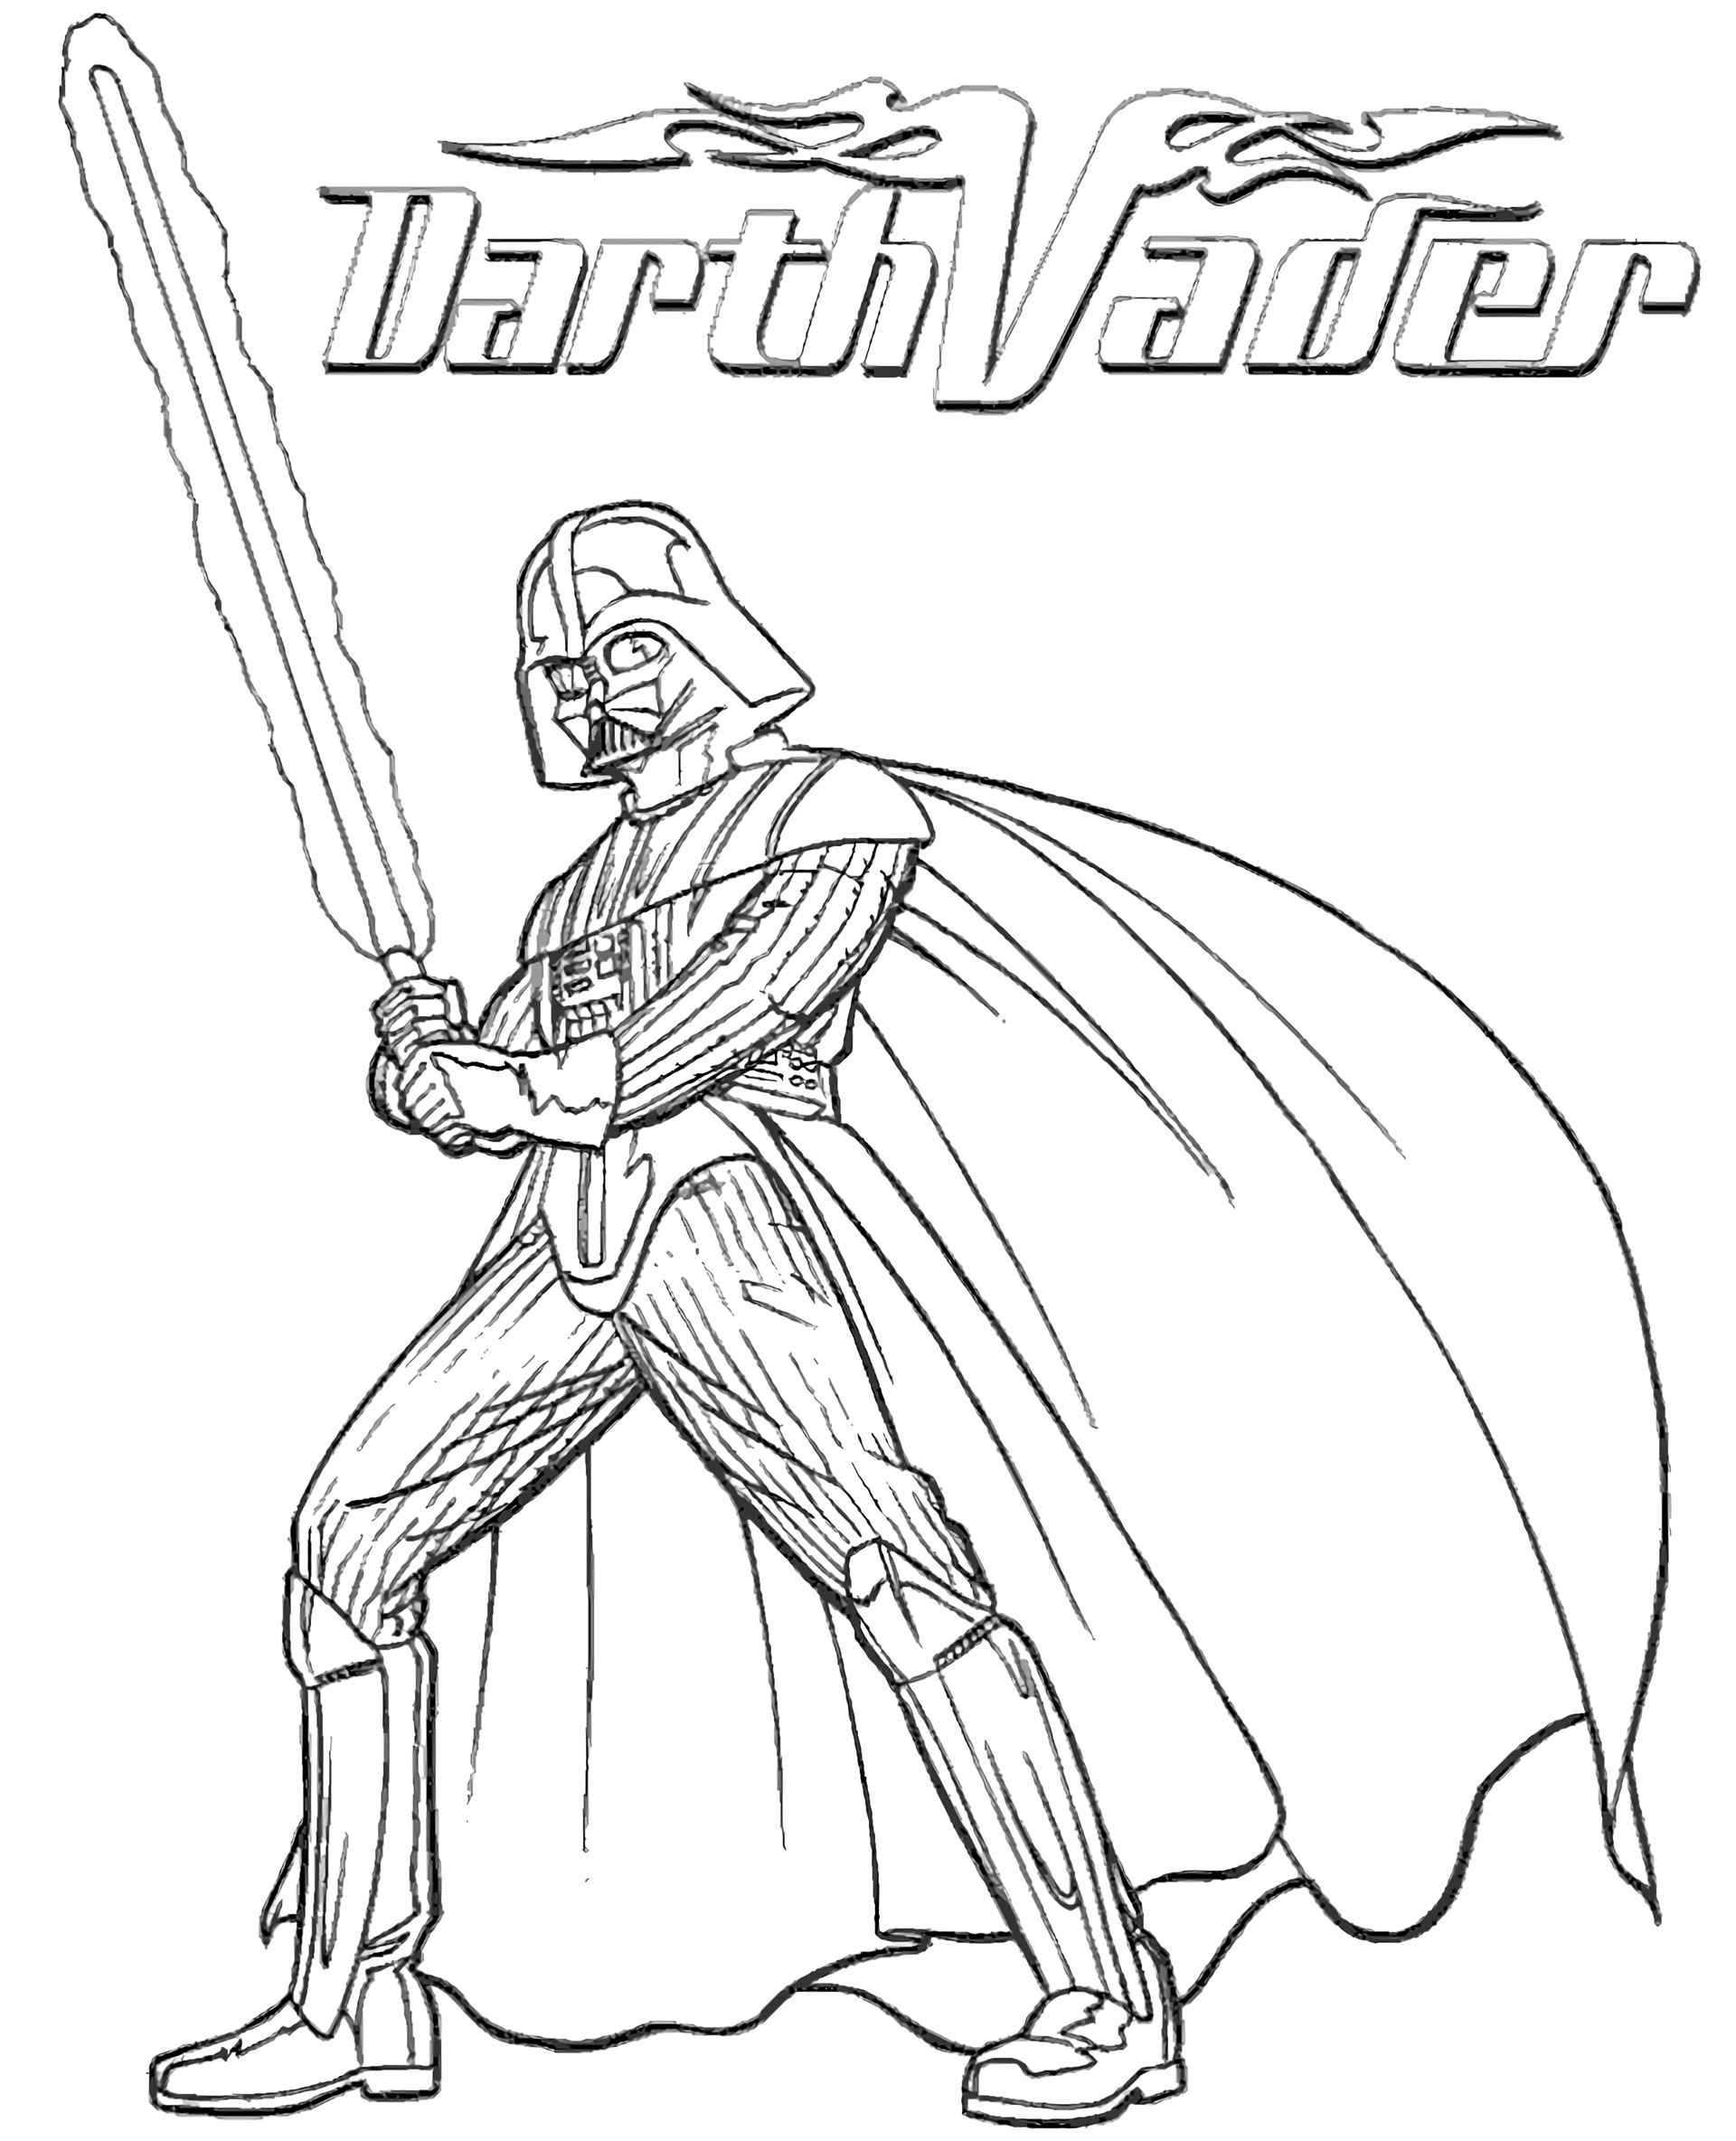 Lord Darth Vader From Star Wars With A Jedi Sword Coloring Page